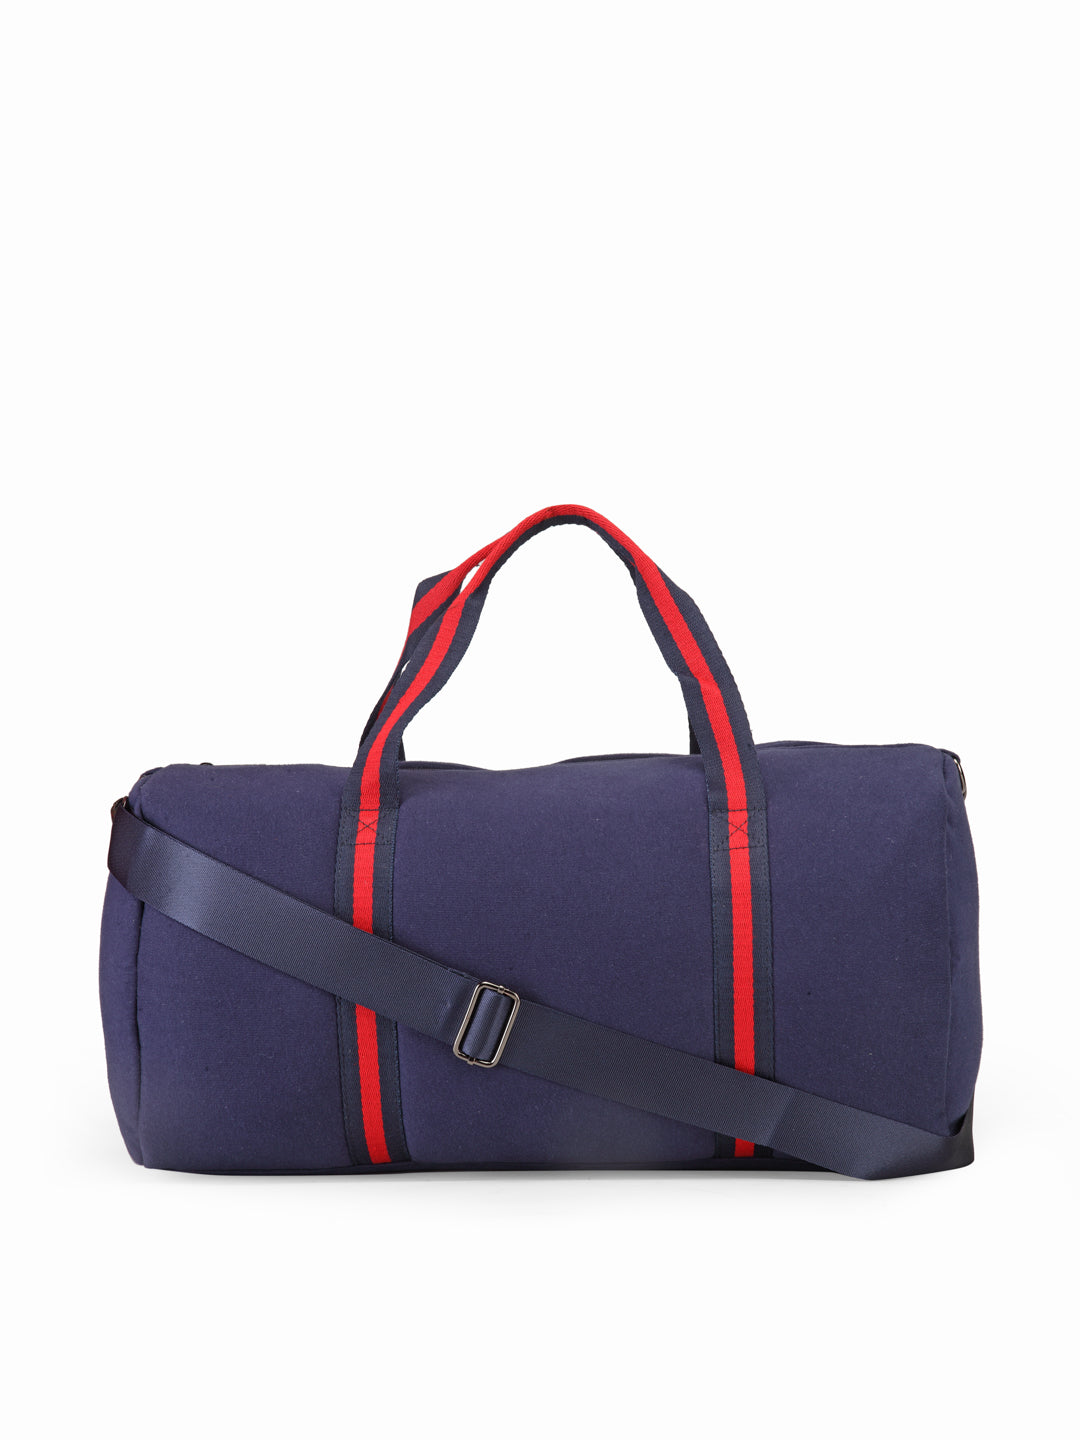 Blue Duffle Bag - London Rag India